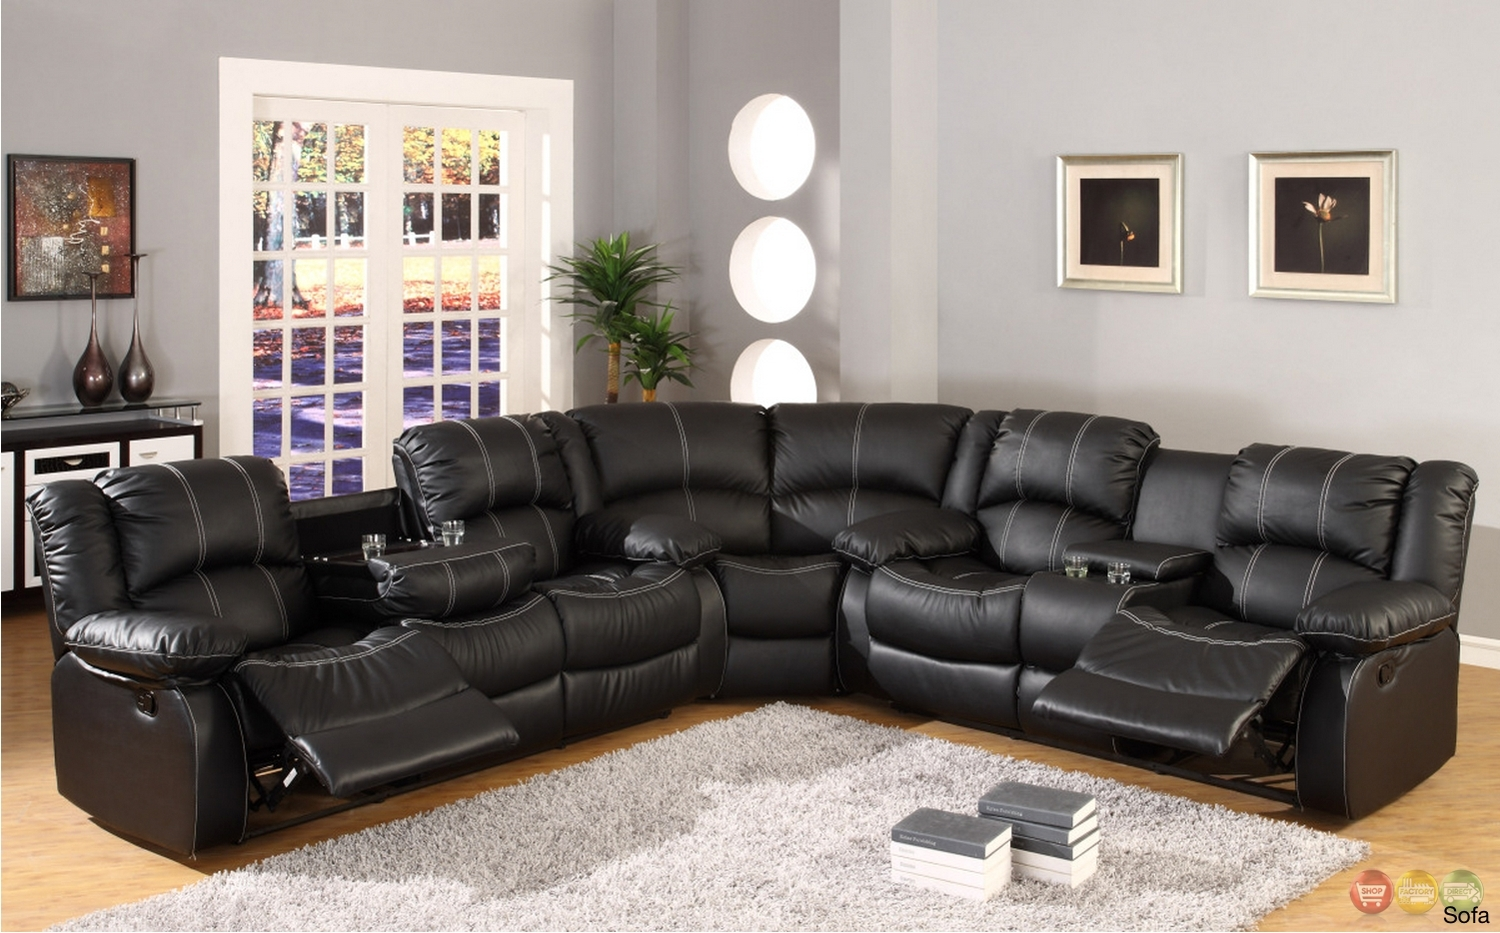 Astonishing Leather Motion Sectional Sofa 24 For Your Media Room For Leather Motion Sectional Sofas (View 3 of 10)